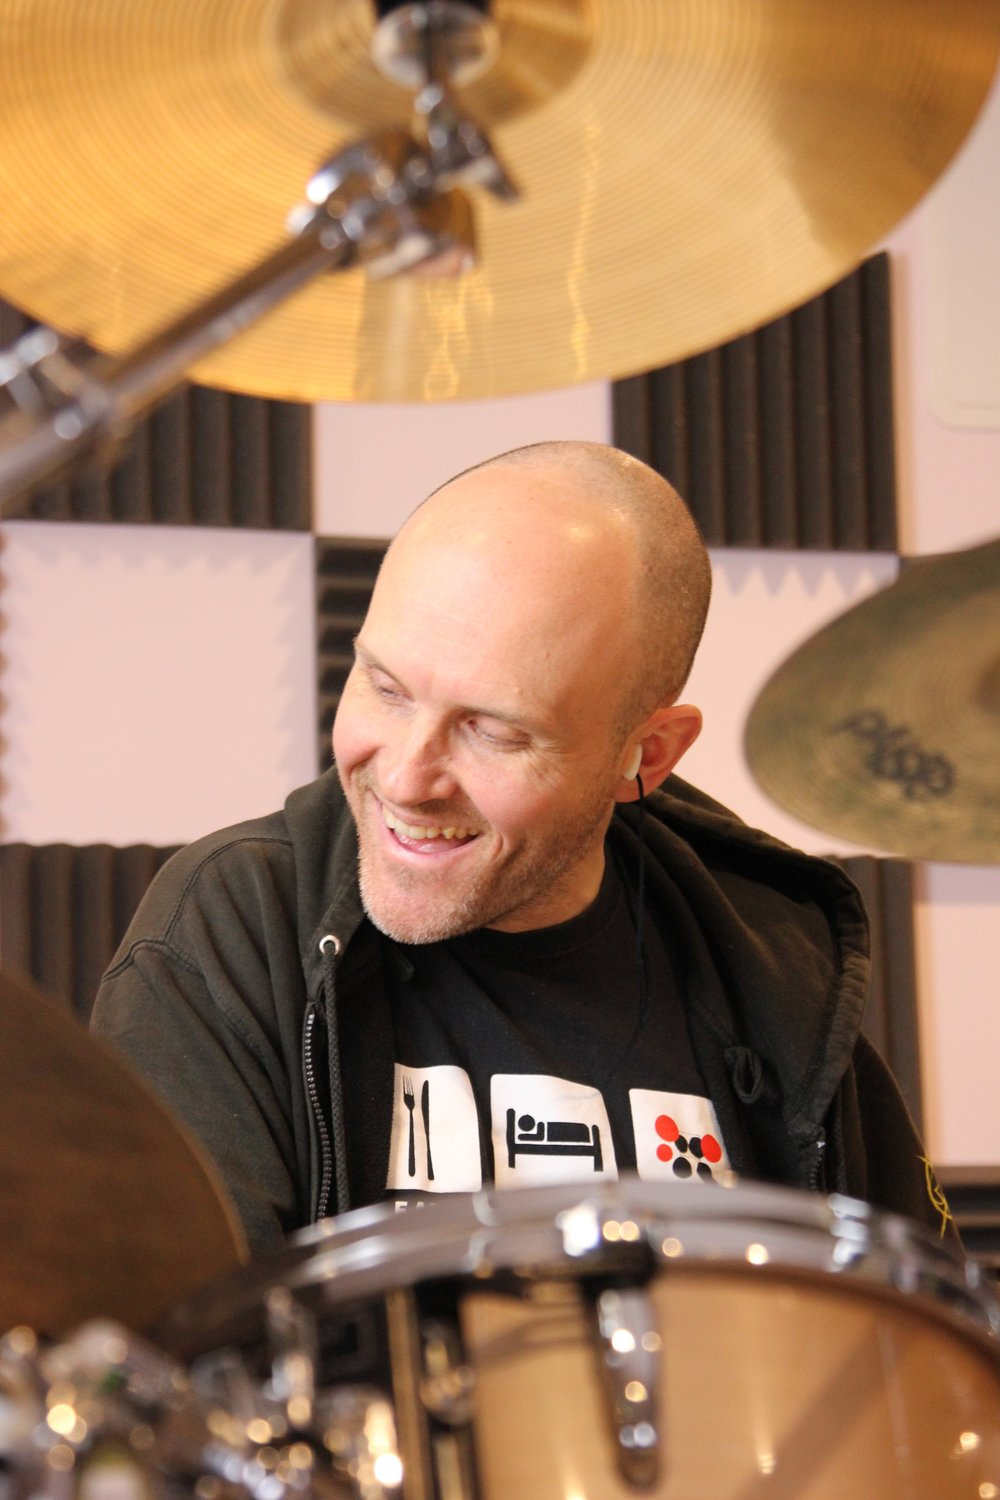 Mike Cairns - The Boss, Drummer, Tutor, Sound Technician and Chief Chocolate Taster